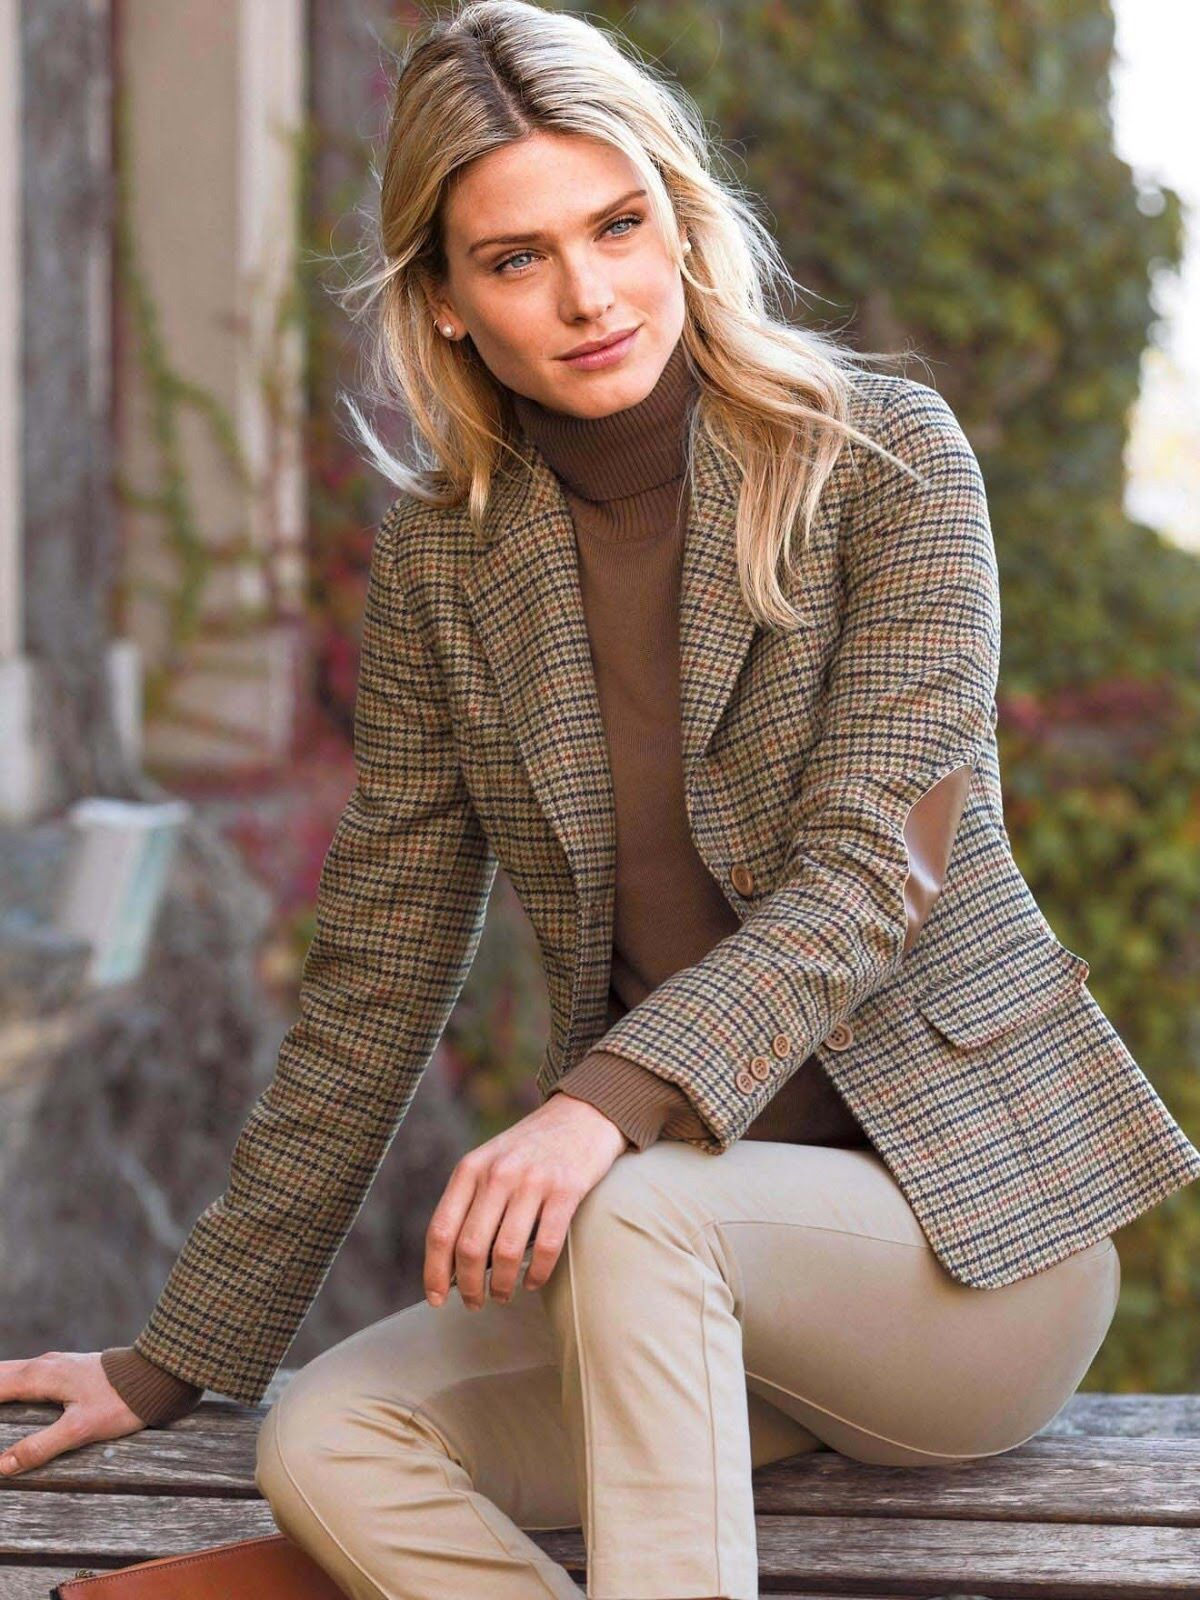 b96a6d016cb6fd Love this classic tweed jacket over tan turtleneck sweater and beige ...